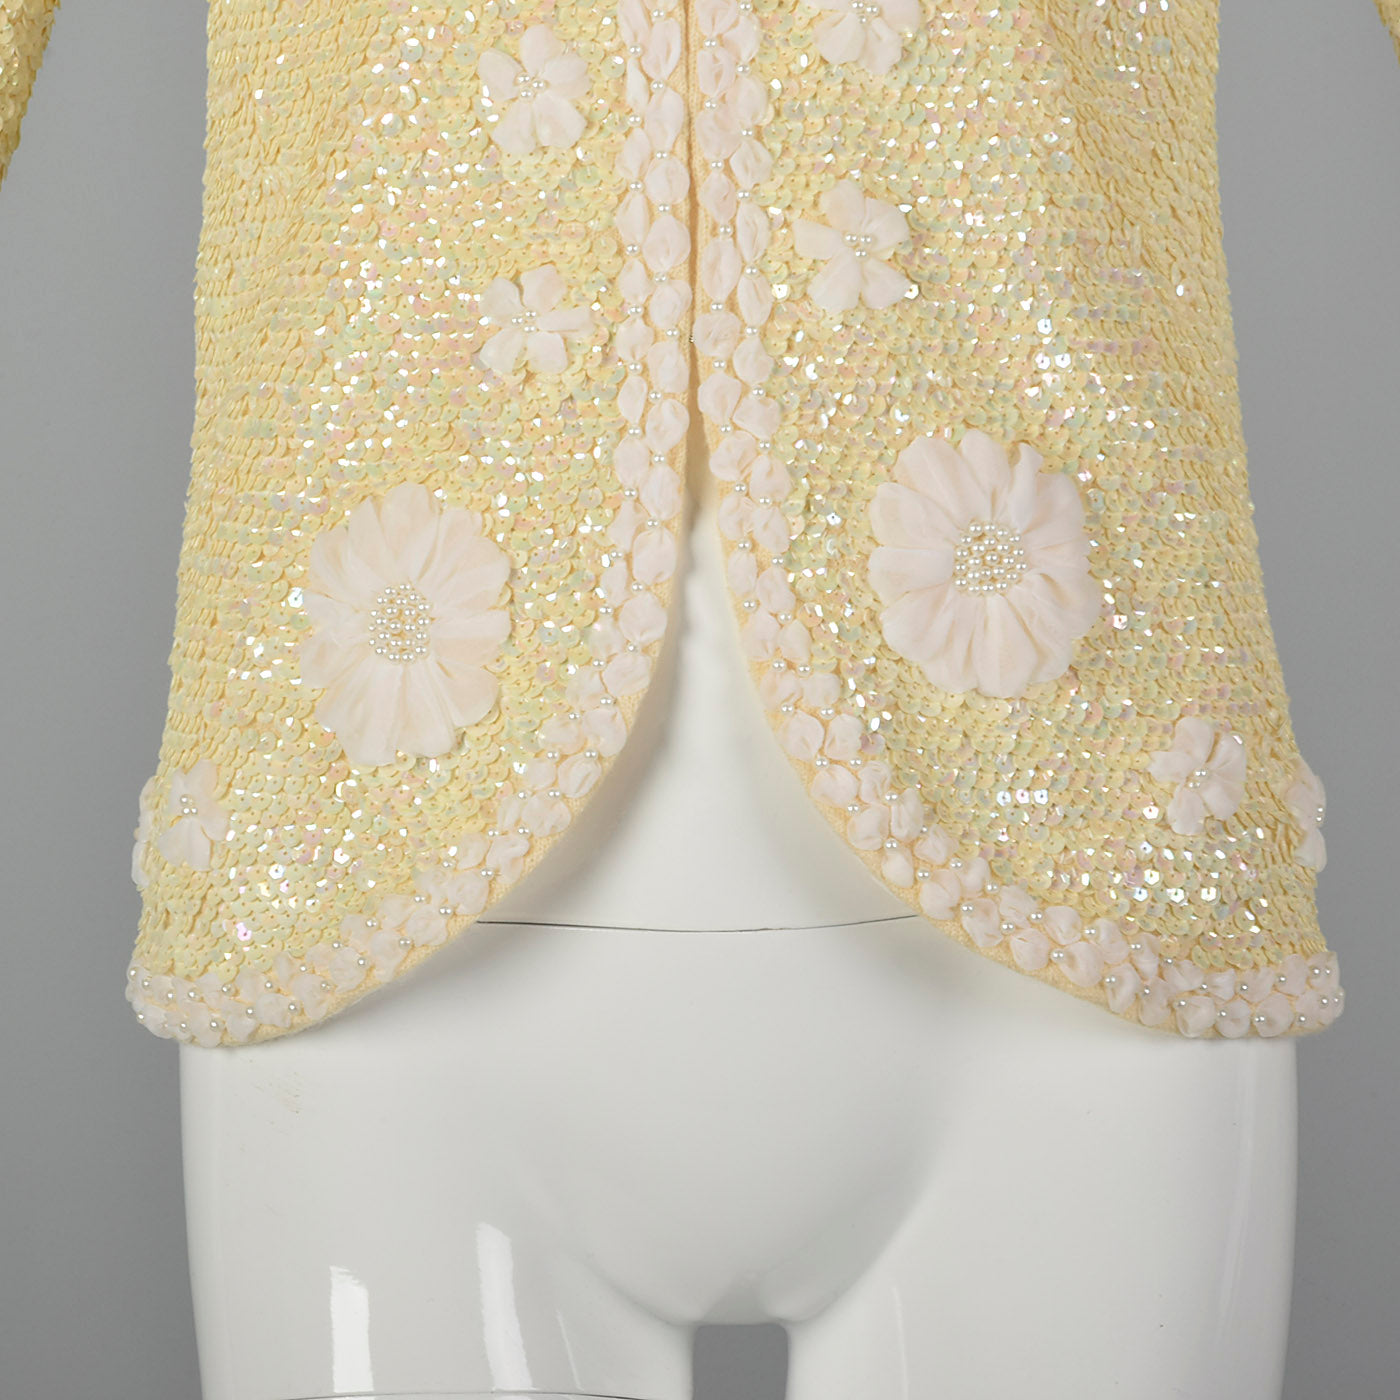 1960s Cardigan with Sequins and Woven Ribbon Design